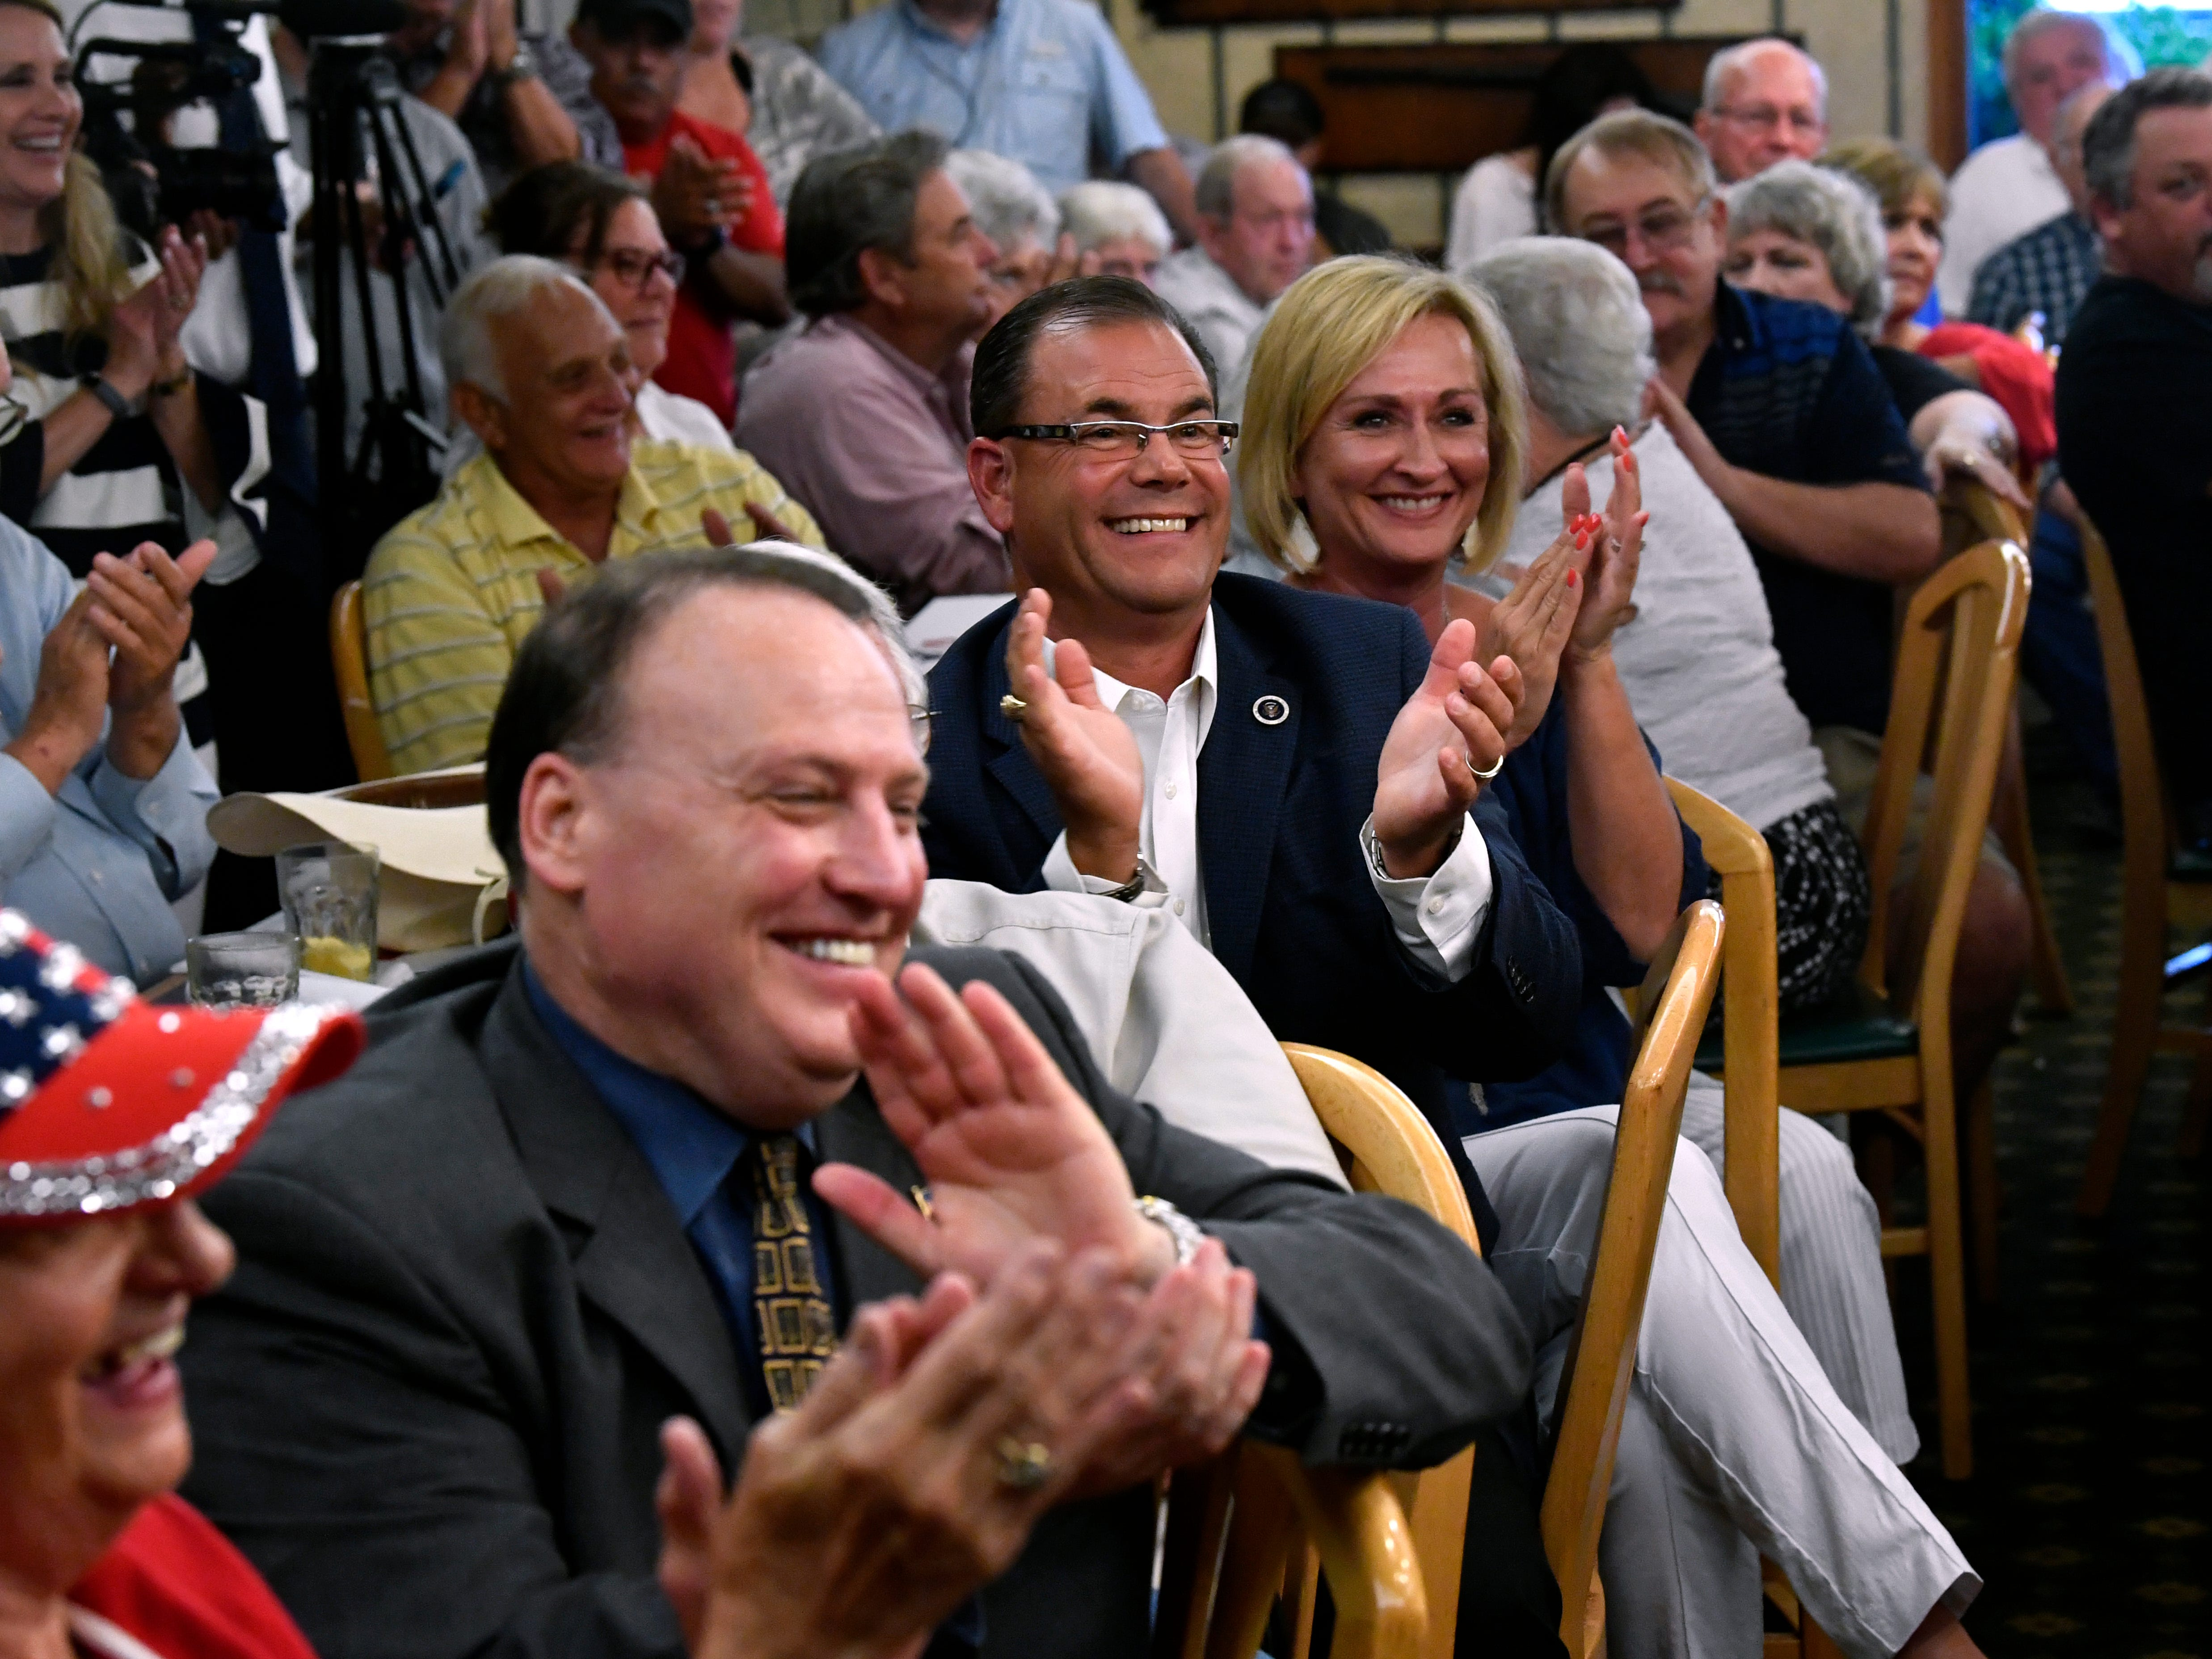 The audience applauds Senator Ted Cruz for one of his remarks during a town hall meeting Thursday August 9, 2018. Cruz spoke to and greeted supporters for over 90 minutes at Underwood's Cafeteria.